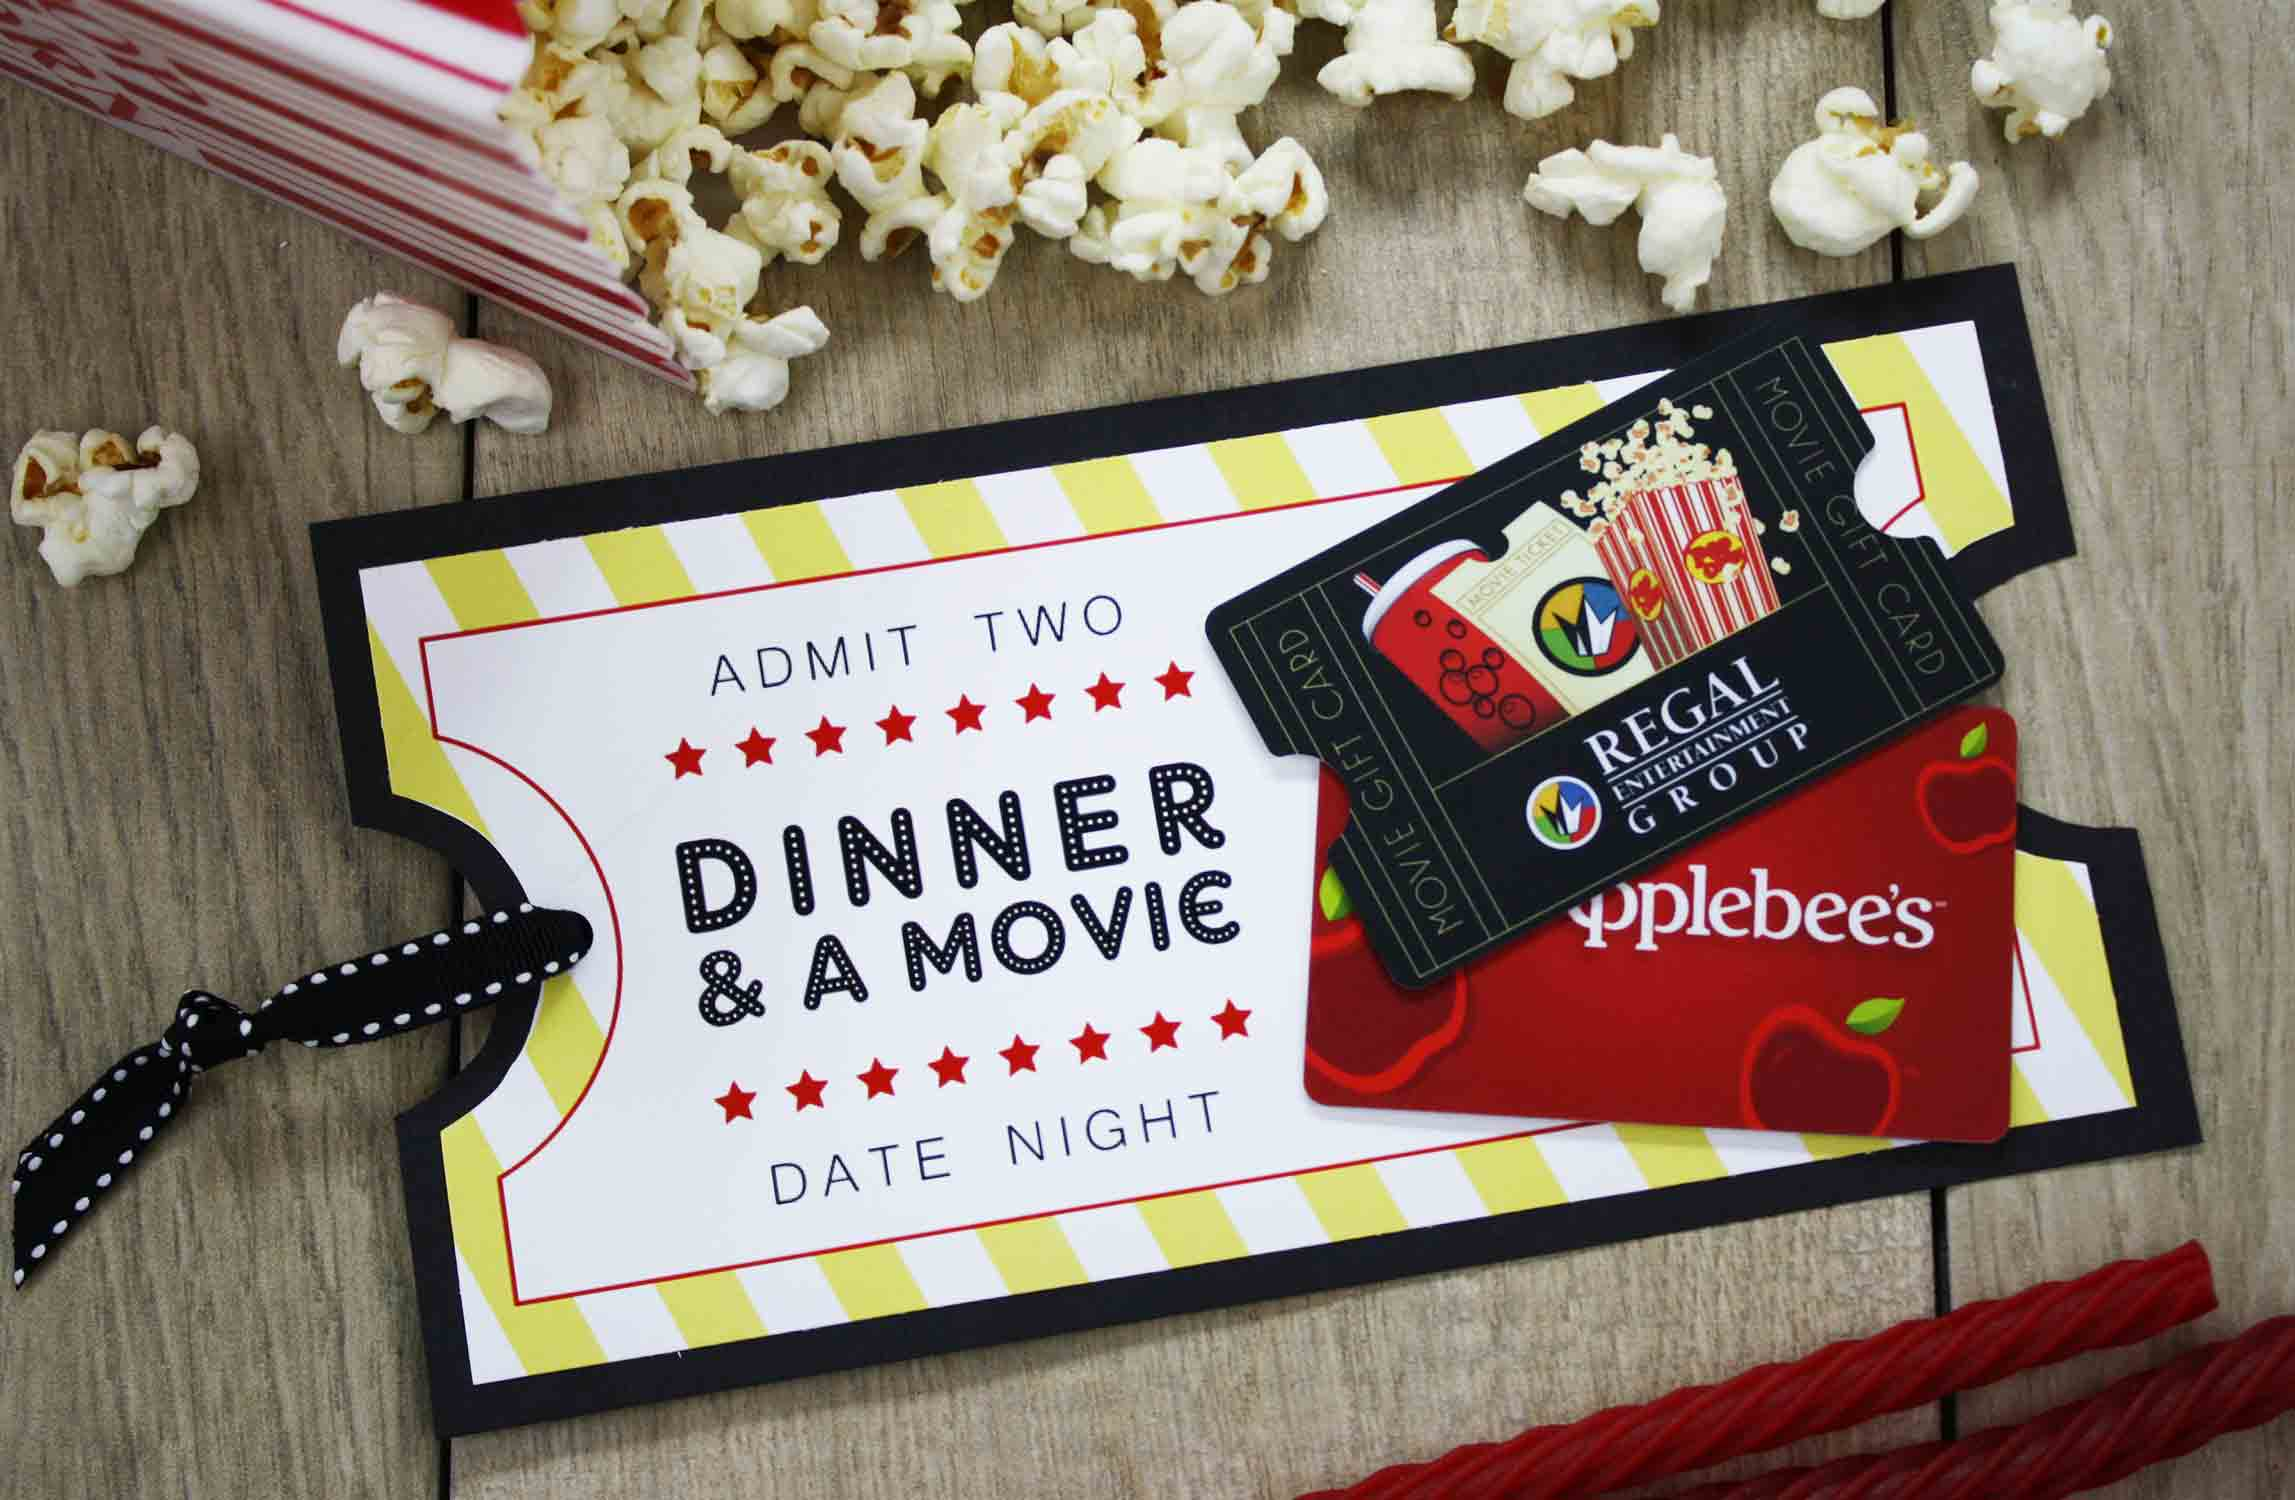 Restaurant and a Movie gift card